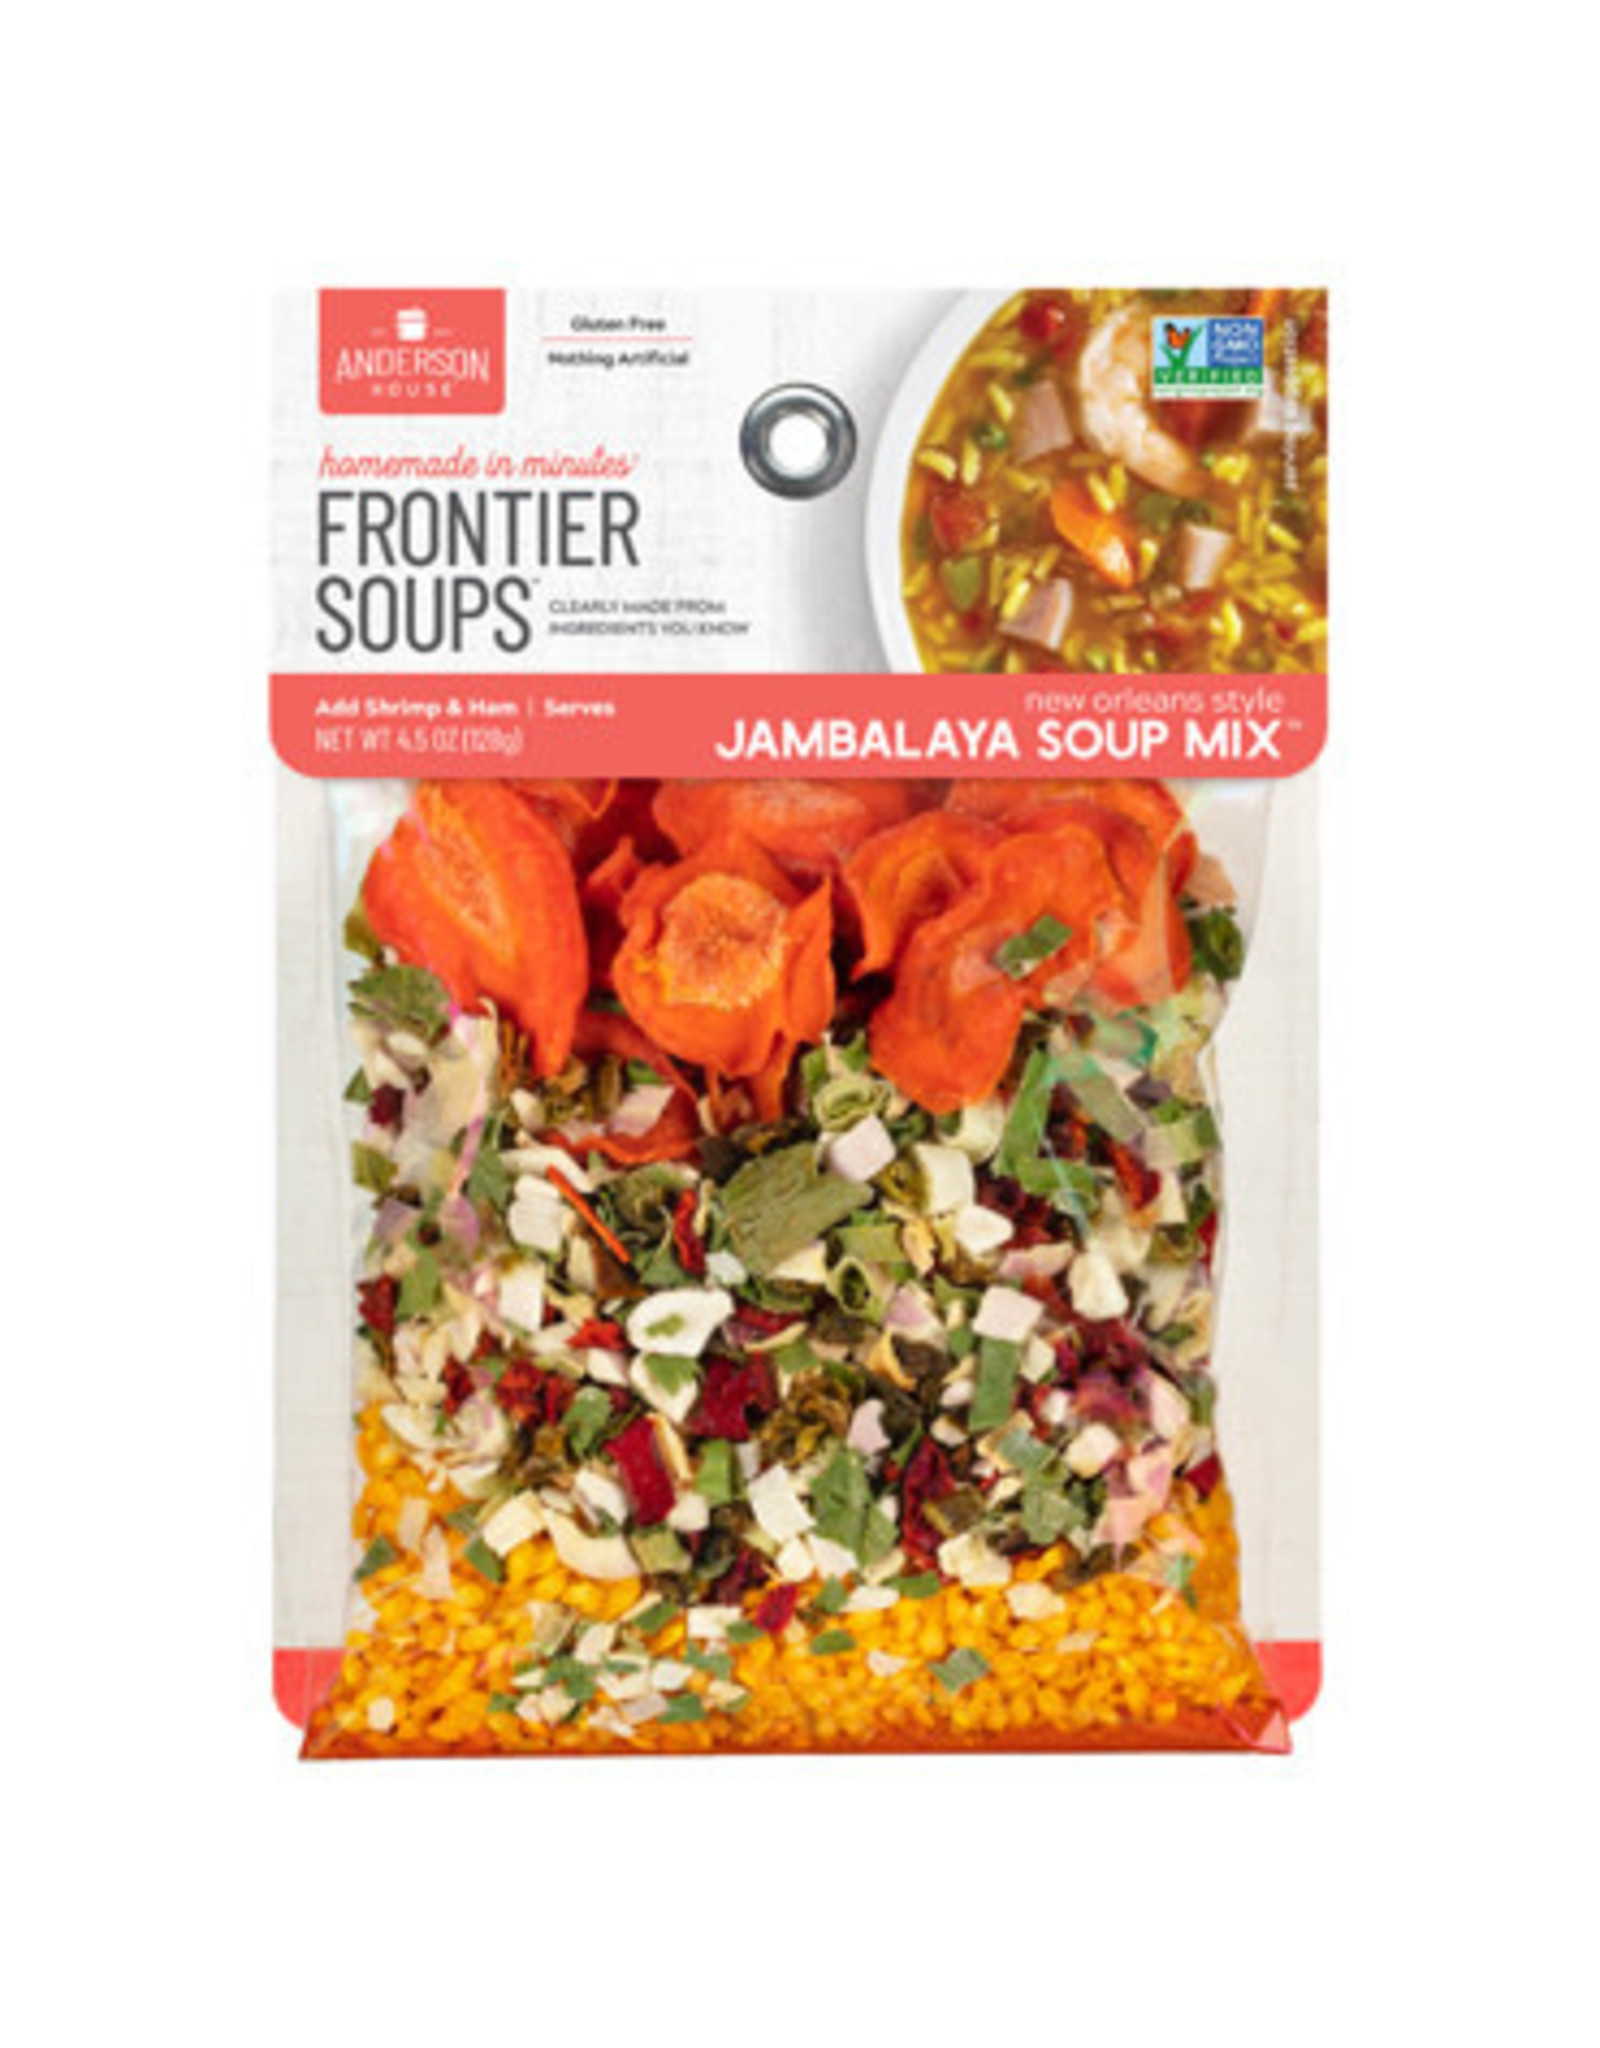 Frontier Soups NEW ORLEANS JAMBALAYA SOUP MIX